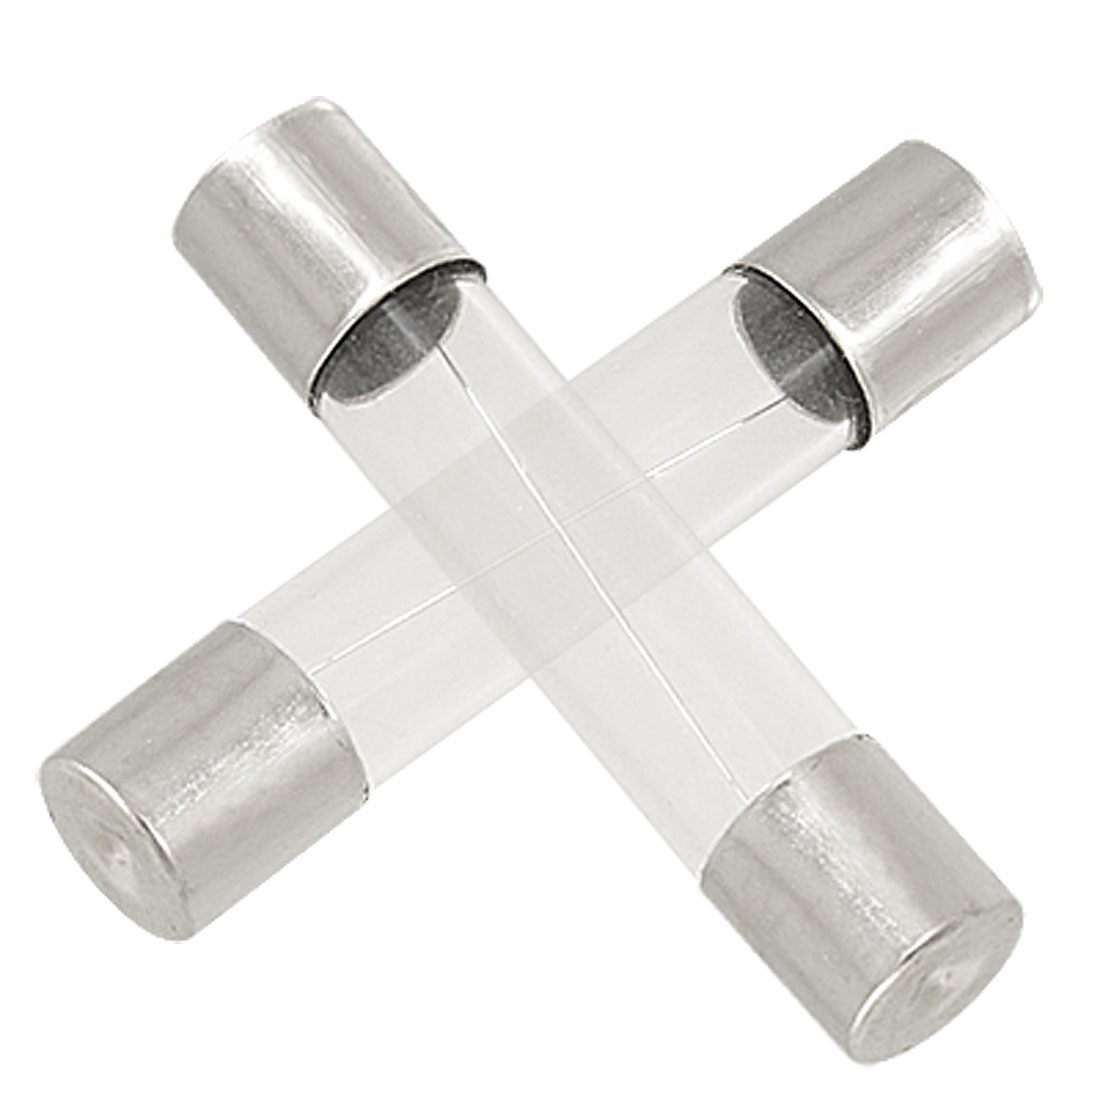 100x 250V 2A Quick Blow Glass Tube Fuses 6 x 30mm